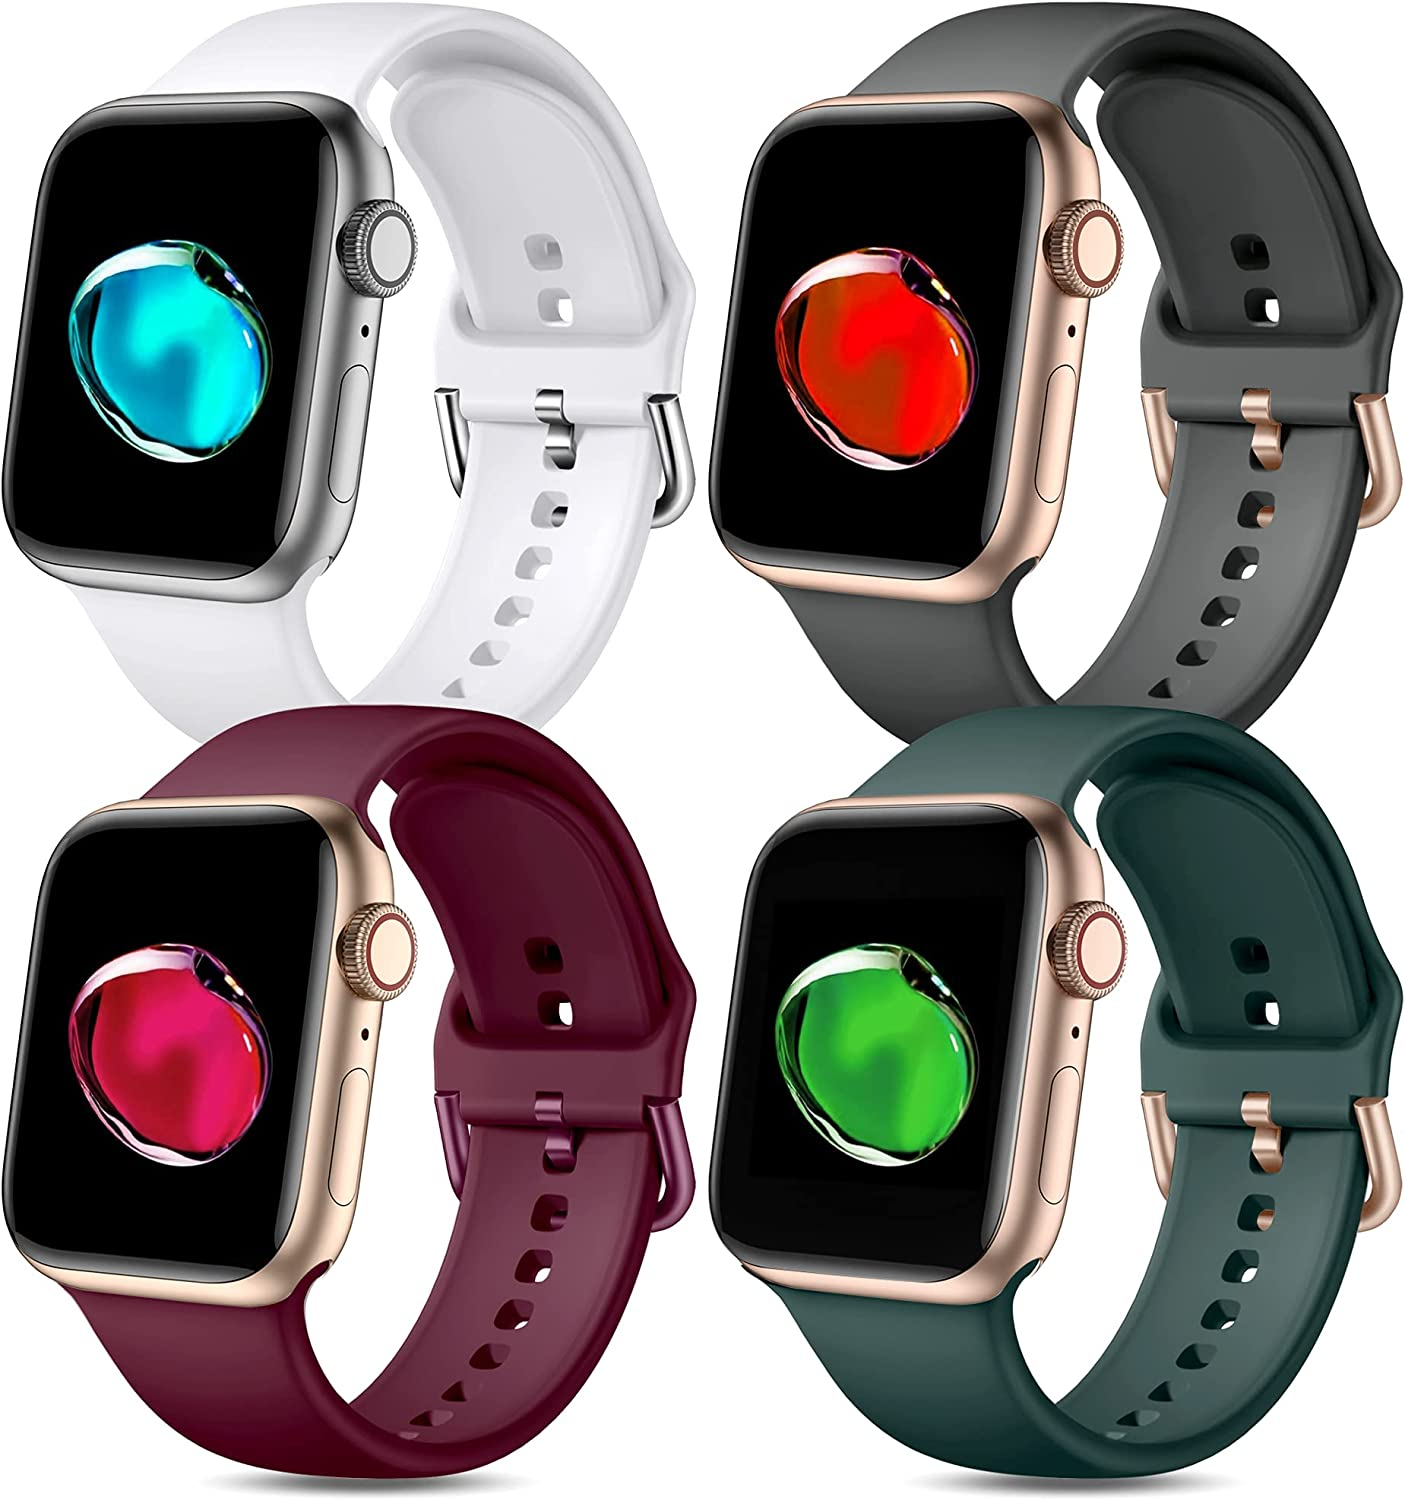 Witzon Compatible with Apple Watch Band 40mm 38mm 42mm 44mm iWatch Series 6 5 4 3 2 1 SE for Women Men Girls, Sport Soft Silicone Replacement Adjustable Strap Wrist Bands Accessories